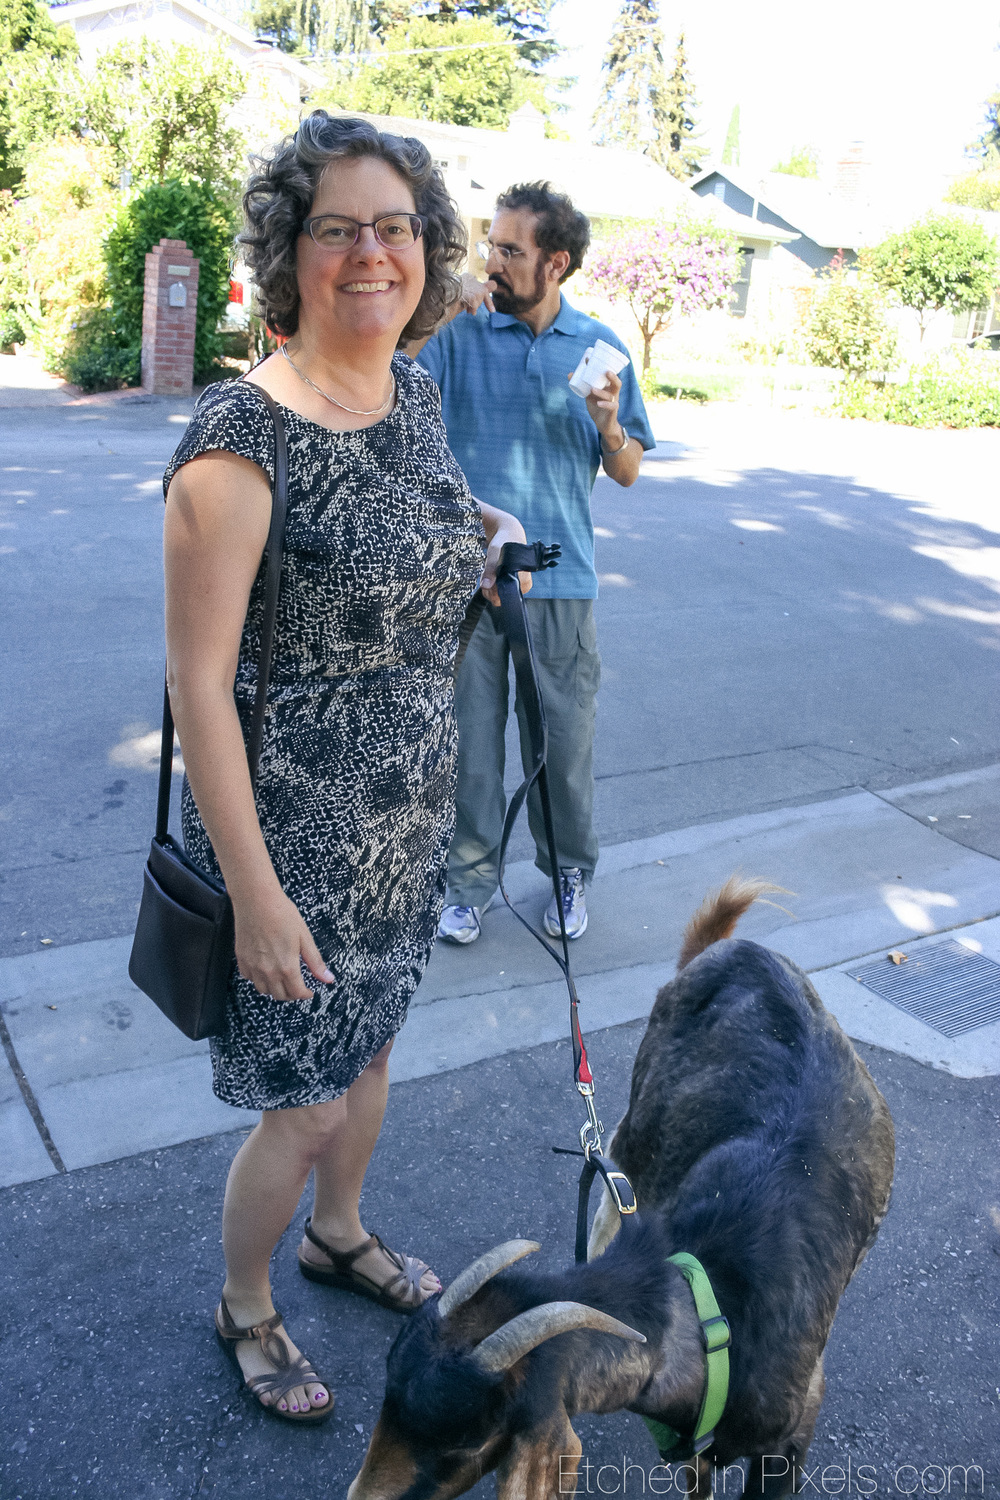 Woman stands holding a goat by the leash.